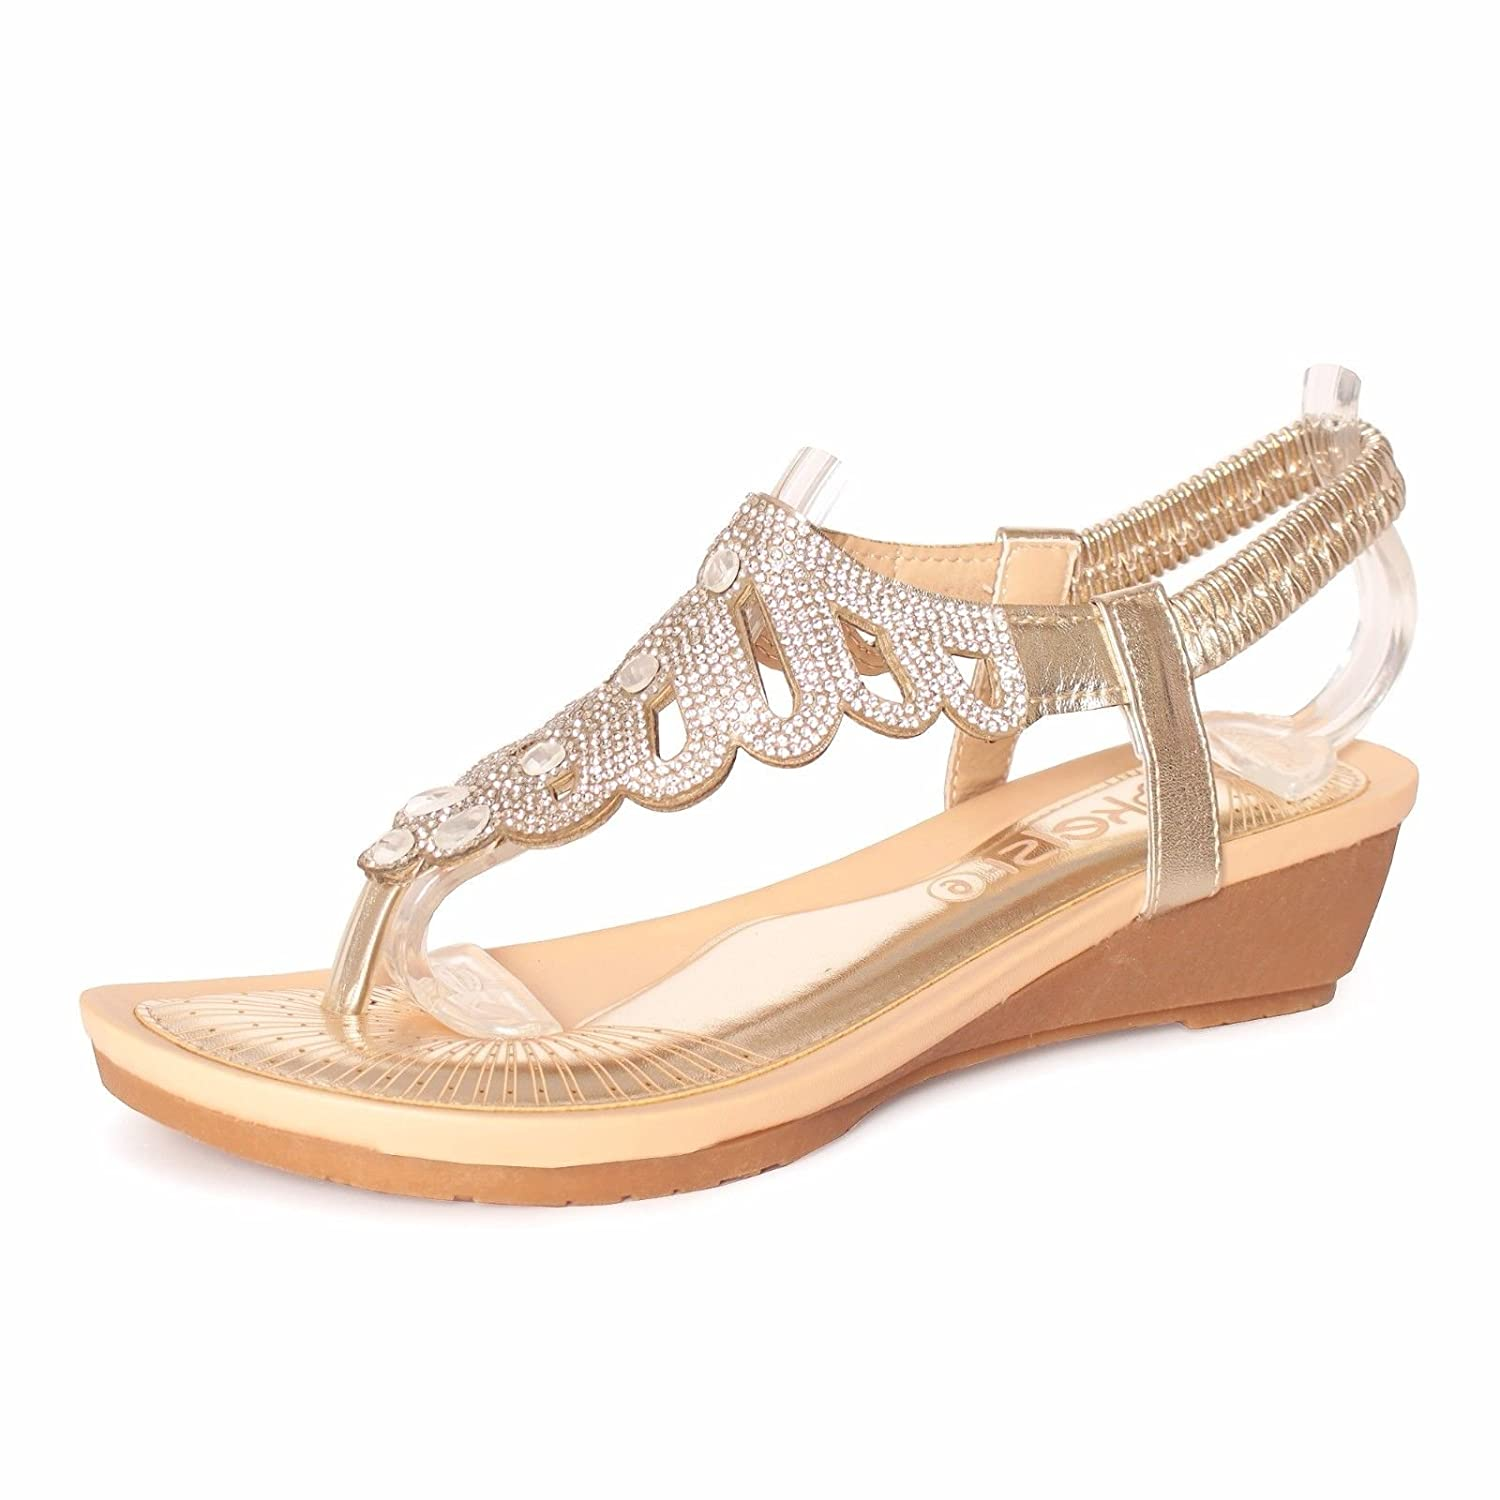 ffb52a2dd88b New Womens Black White Gold Ladies Summer Girls Sandals Ladies Flat  Diamante Wedge Shoes Size Sling Back 3 4 5 6 7 8  Amazon.co.uk  Shoes   Bags